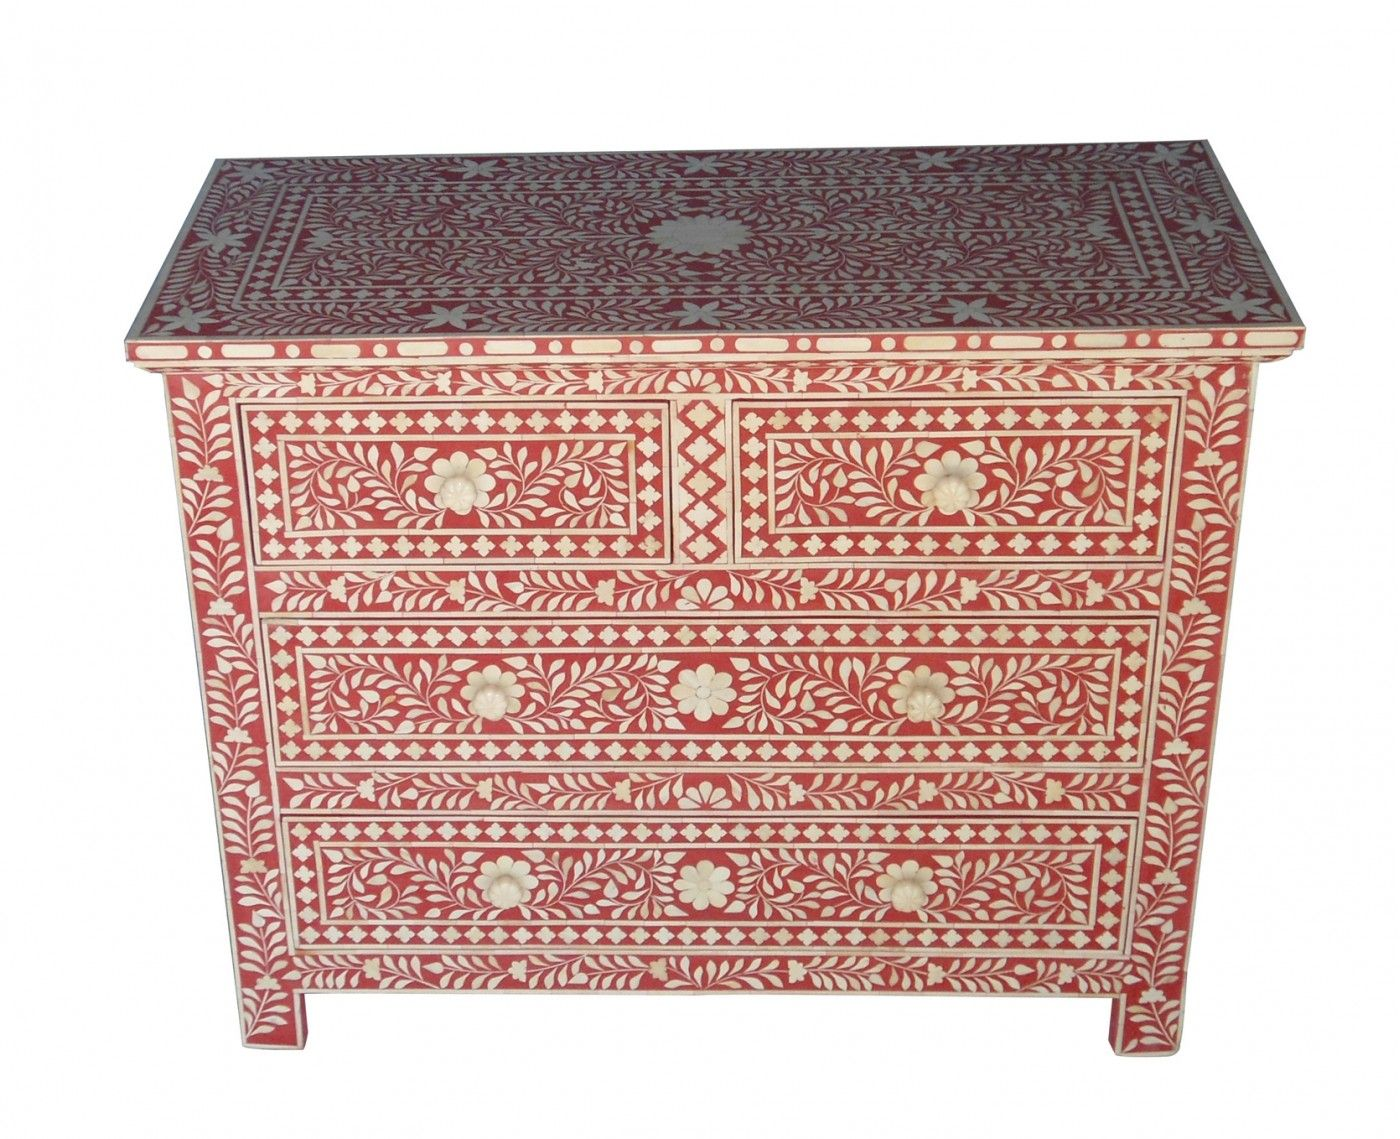 Dazzling and delicious, our Red Floral Chest combines the artistic craftsmanship of India with the iconic vibrancy of colour found in their ceremonies and textiles. Evocatively exotic in flavour, each piece is painstakingly handmade from buffalo and formed into a floral design that is then given layers of coloured resin and finally hand sanding. Co-ordinate with ivory walls and accents of red in furnishings for a casual mood and black for dramatic impact.